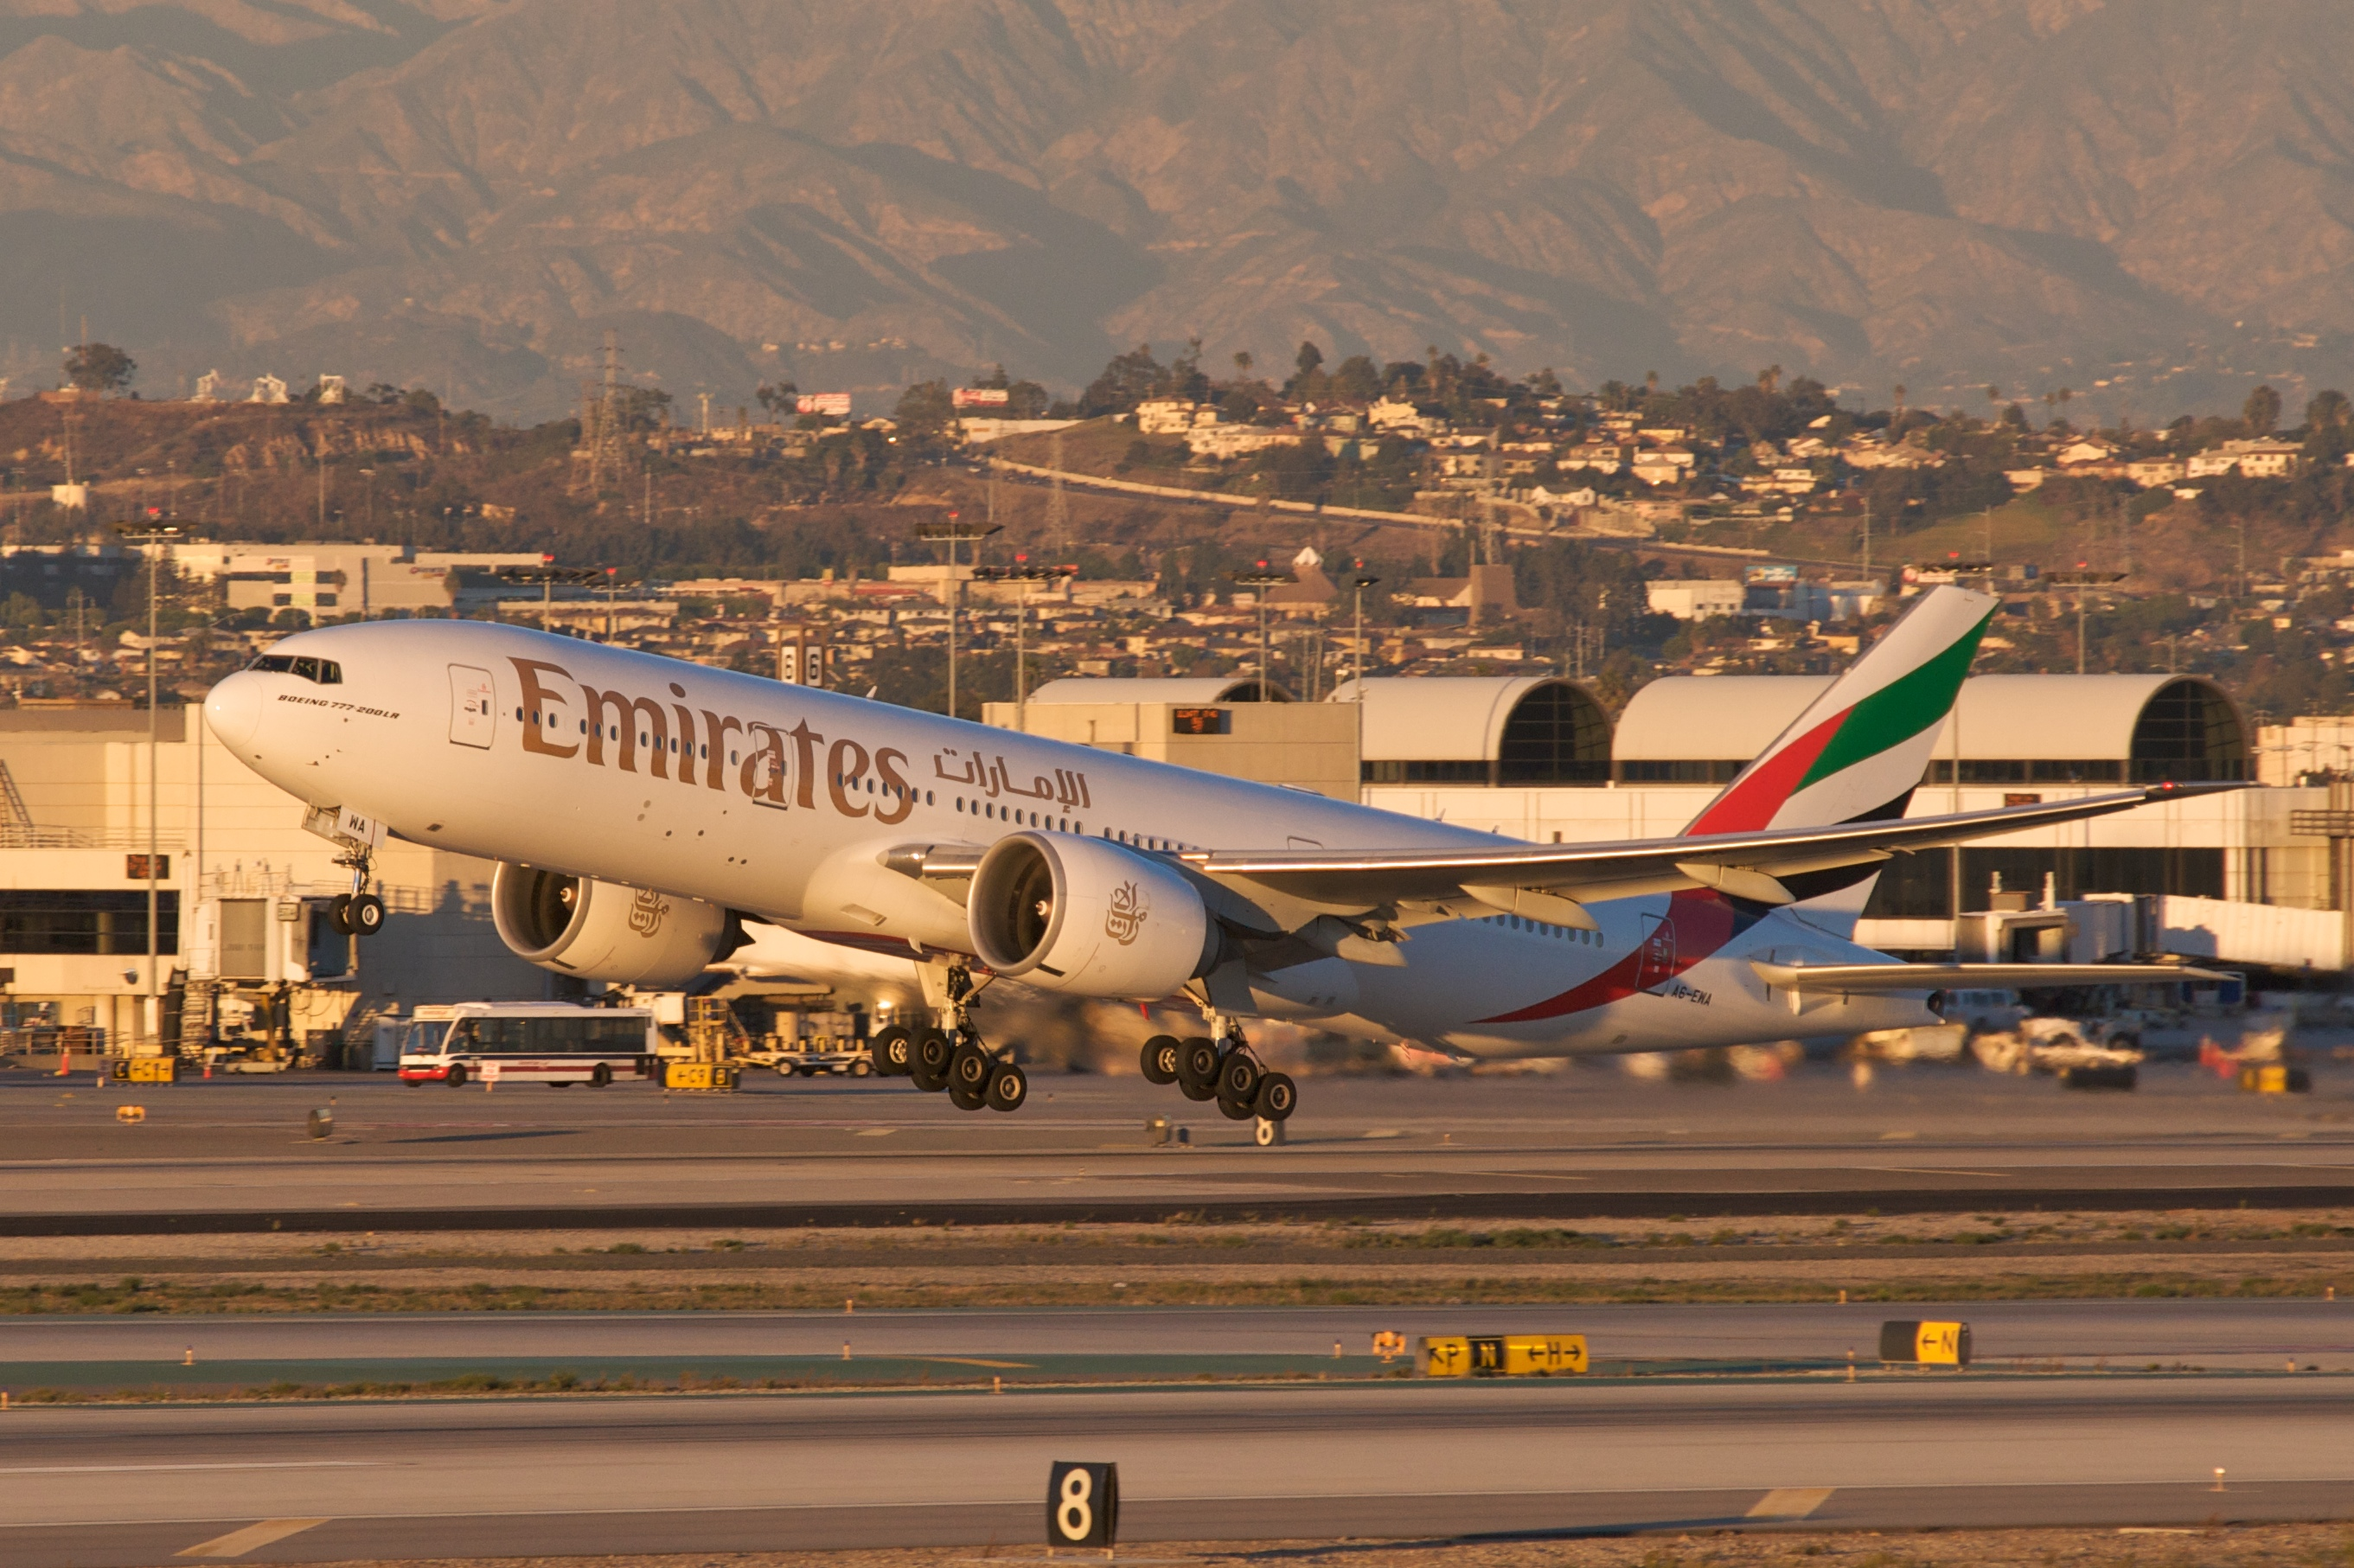 Emirates (airline) - Wikipedia